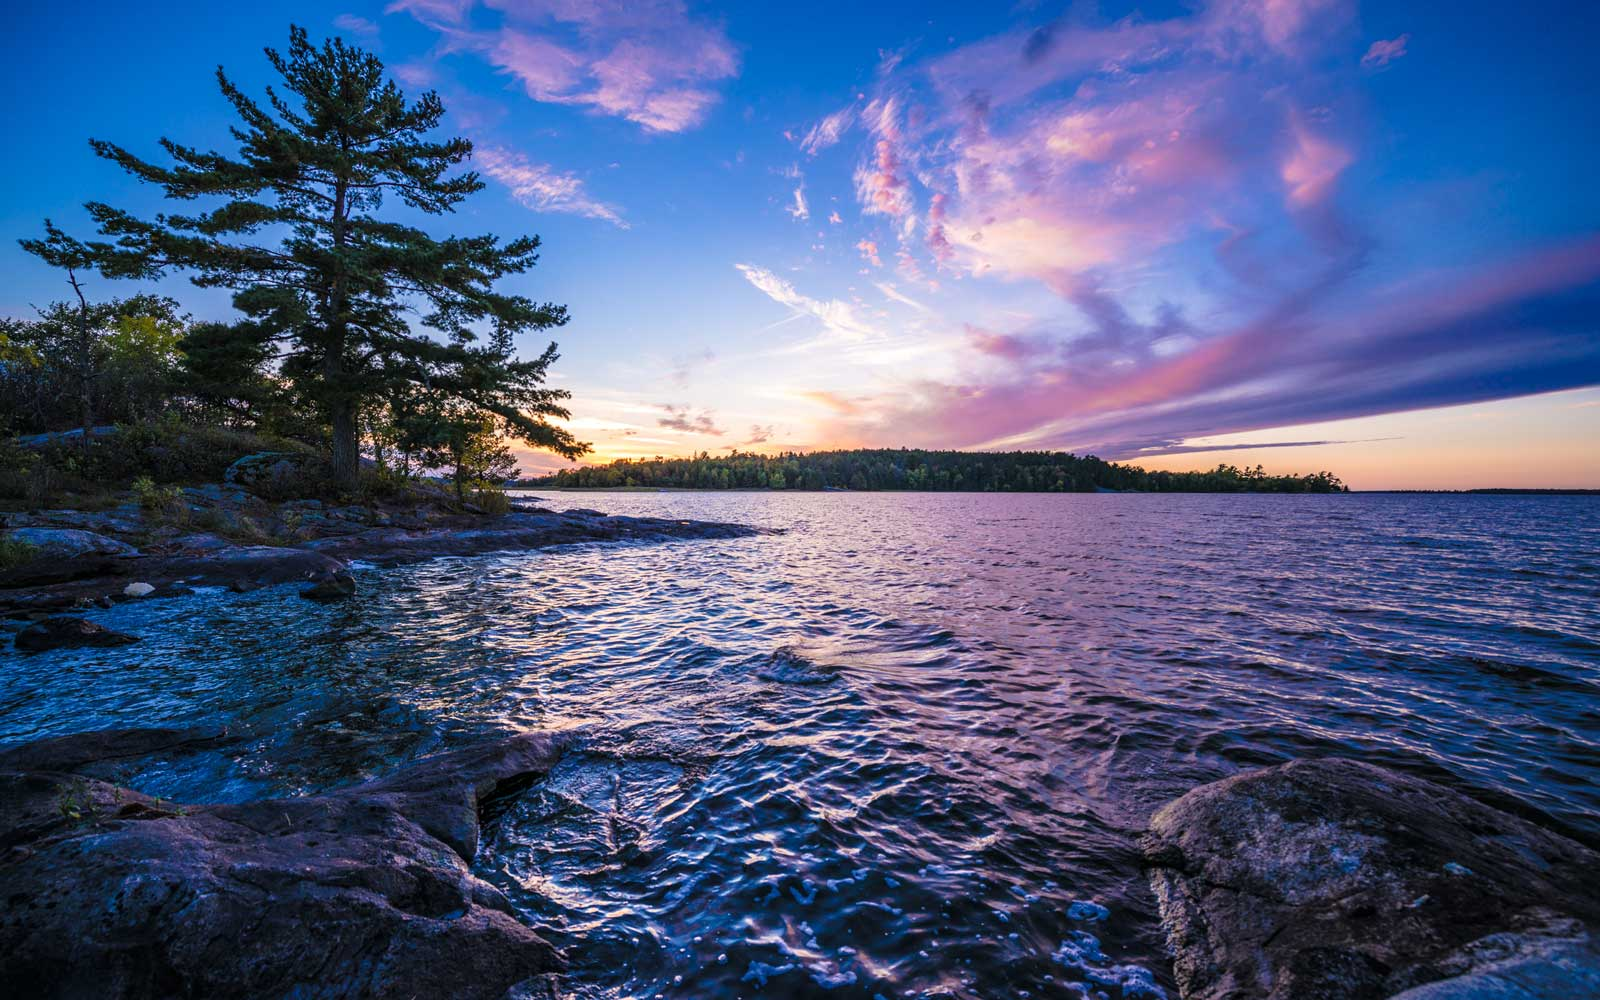 With more than 500 islands and 655 miles of undeveloped shoreline, Voyageurs National Park is a paradise for water lovers.